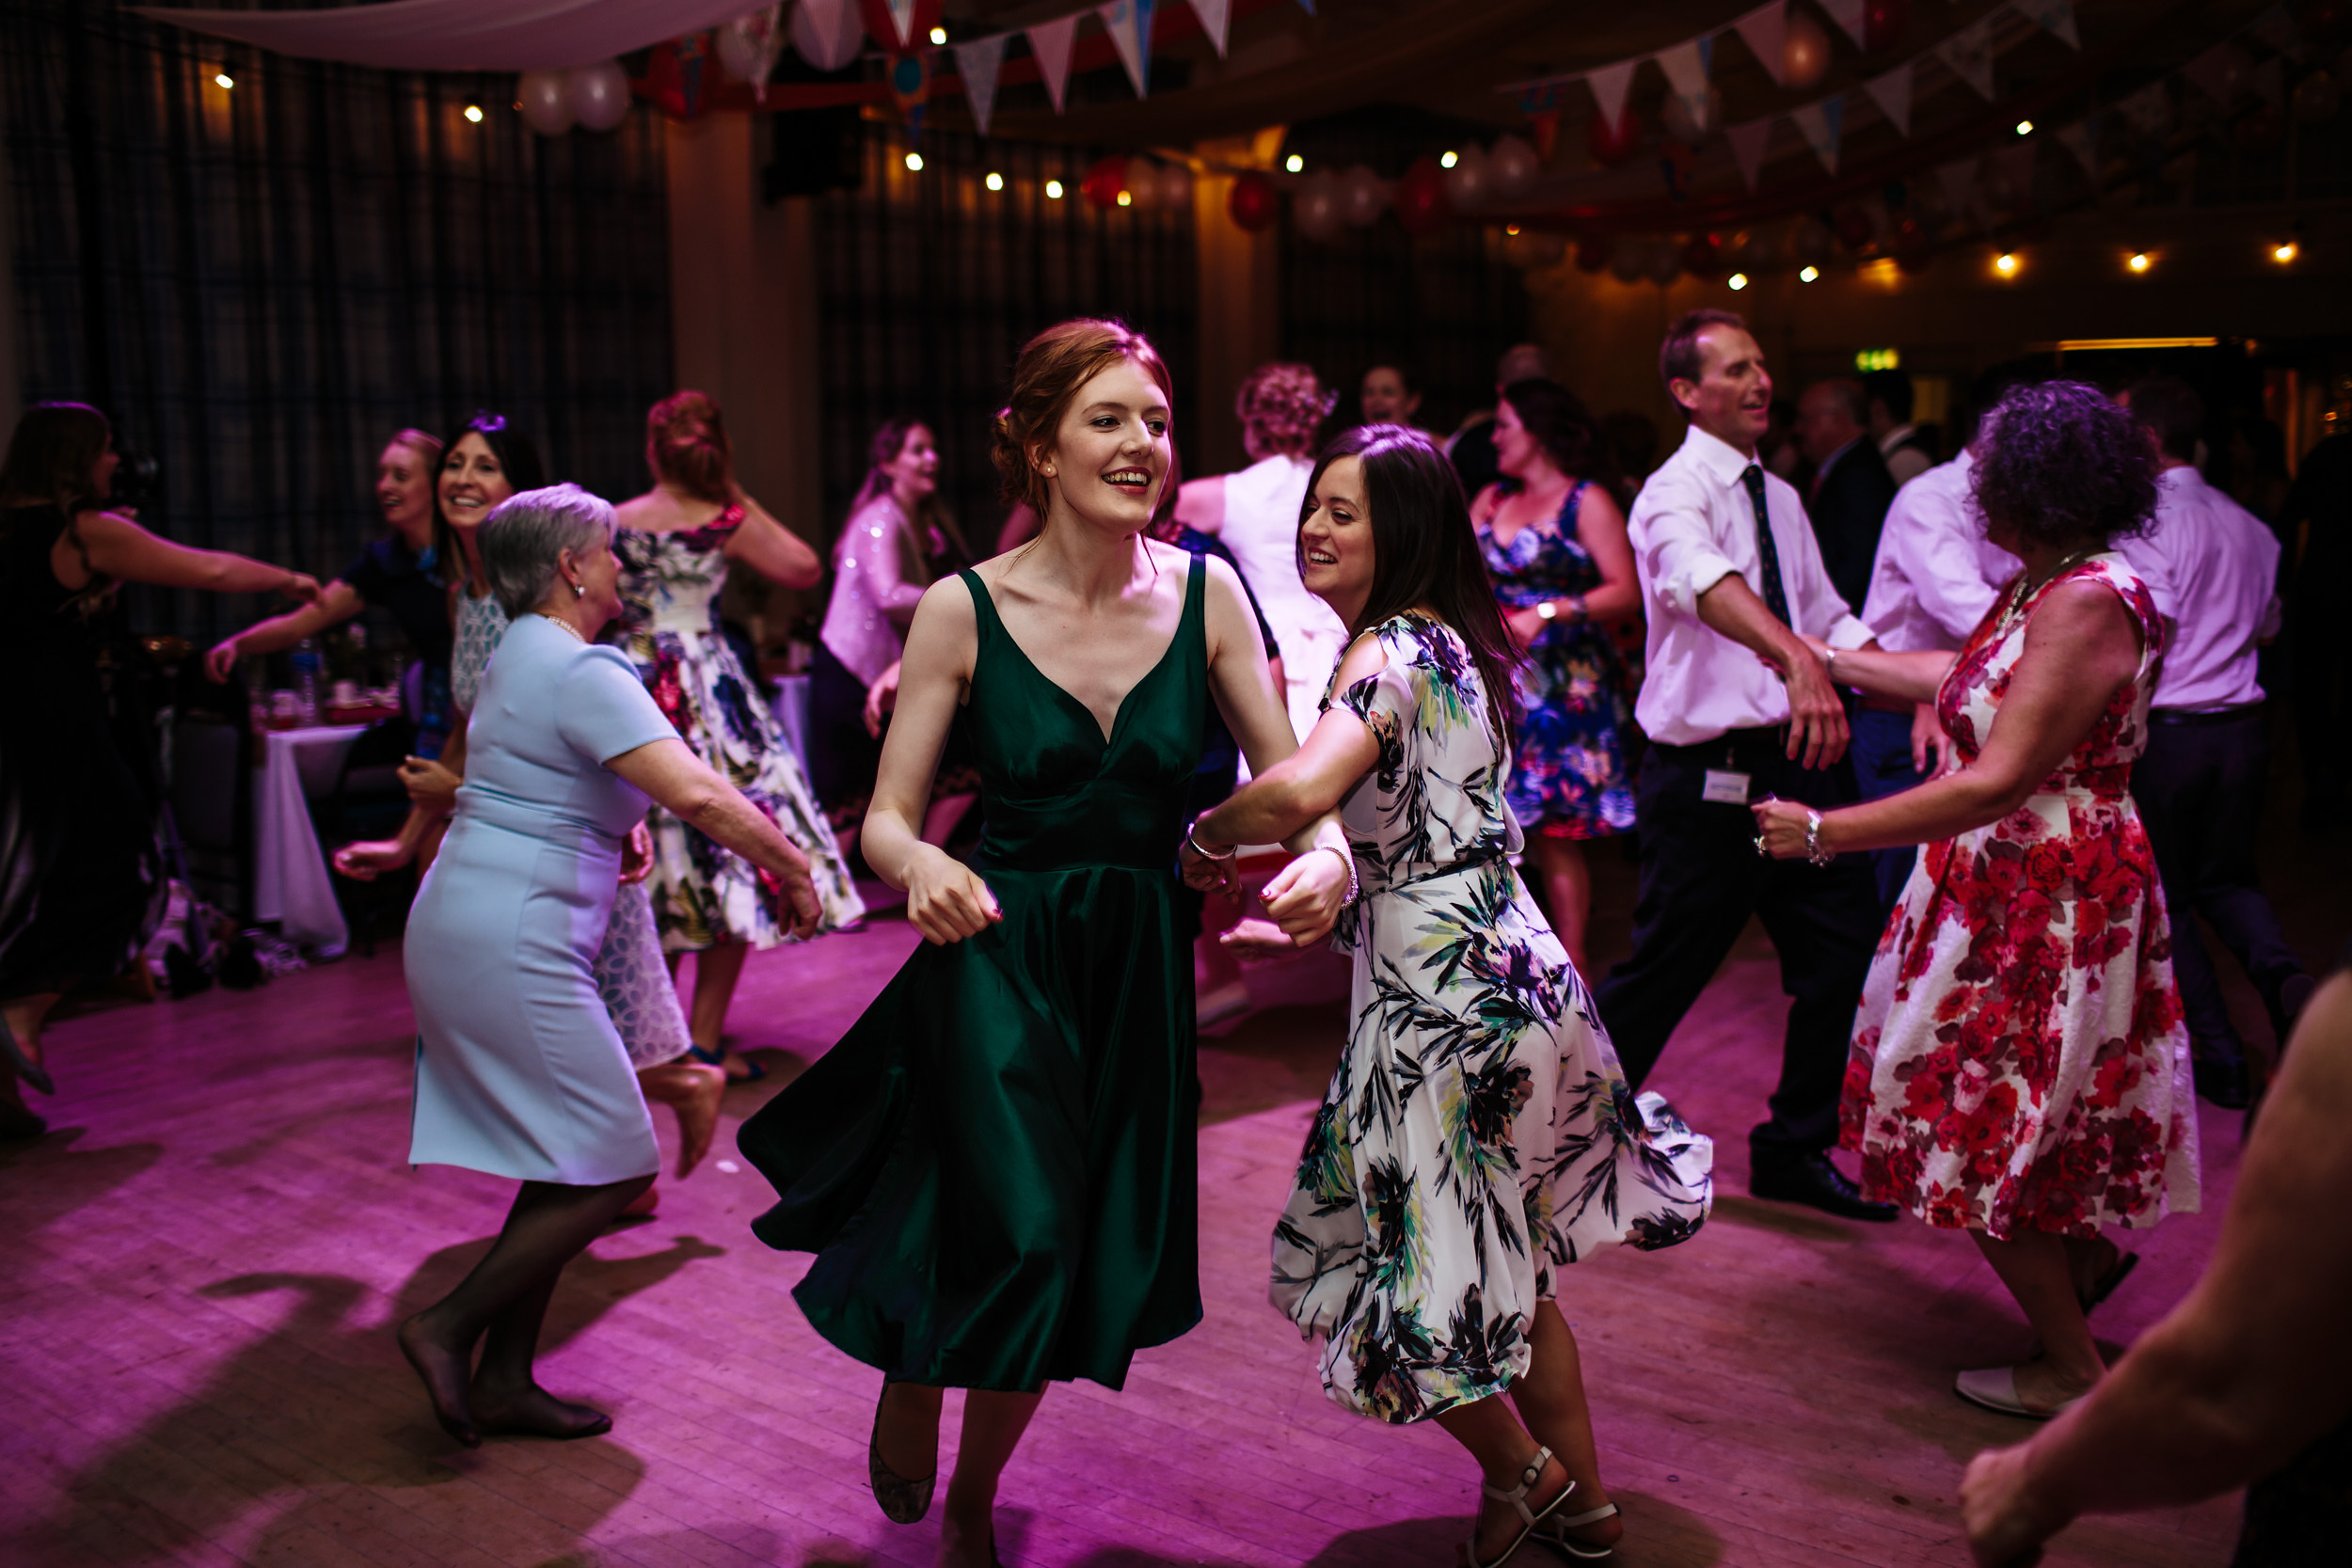 Wedding guests dance at a ceilidh in Lancashire